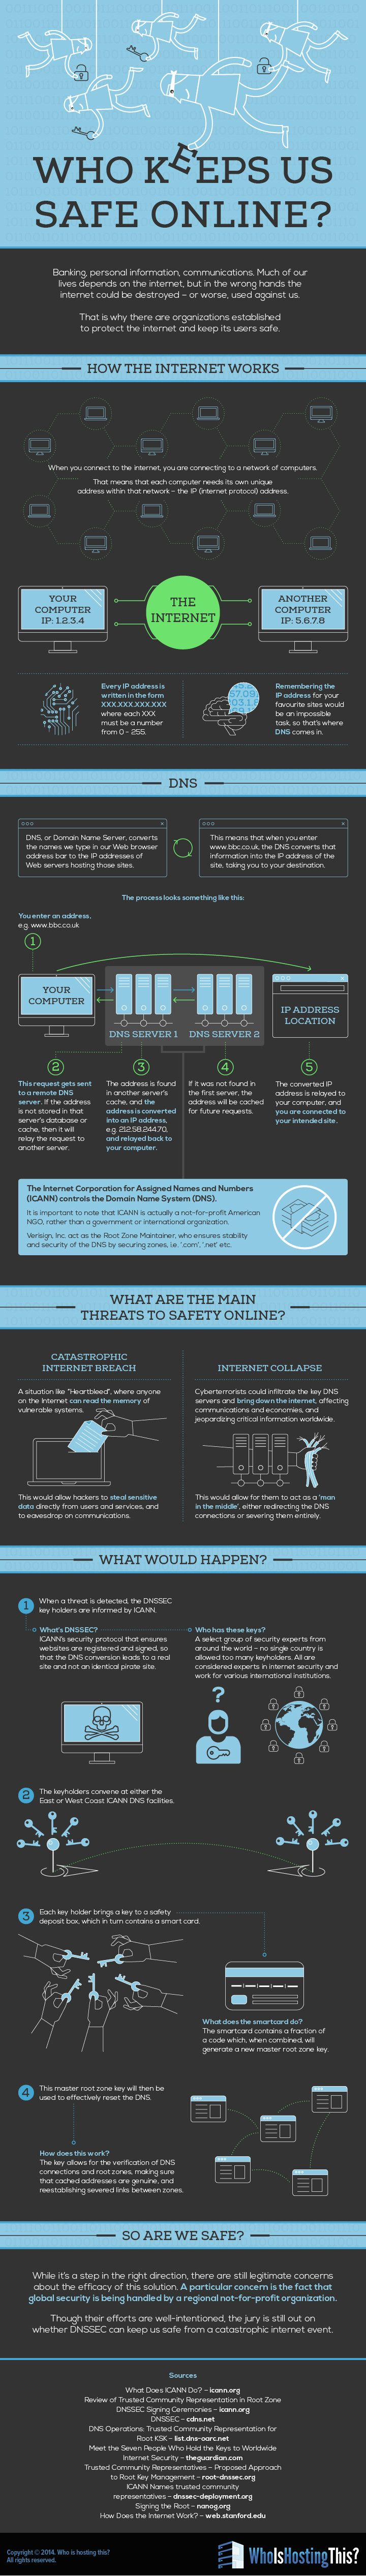 Who Keeps Us Safe Online? #infographic